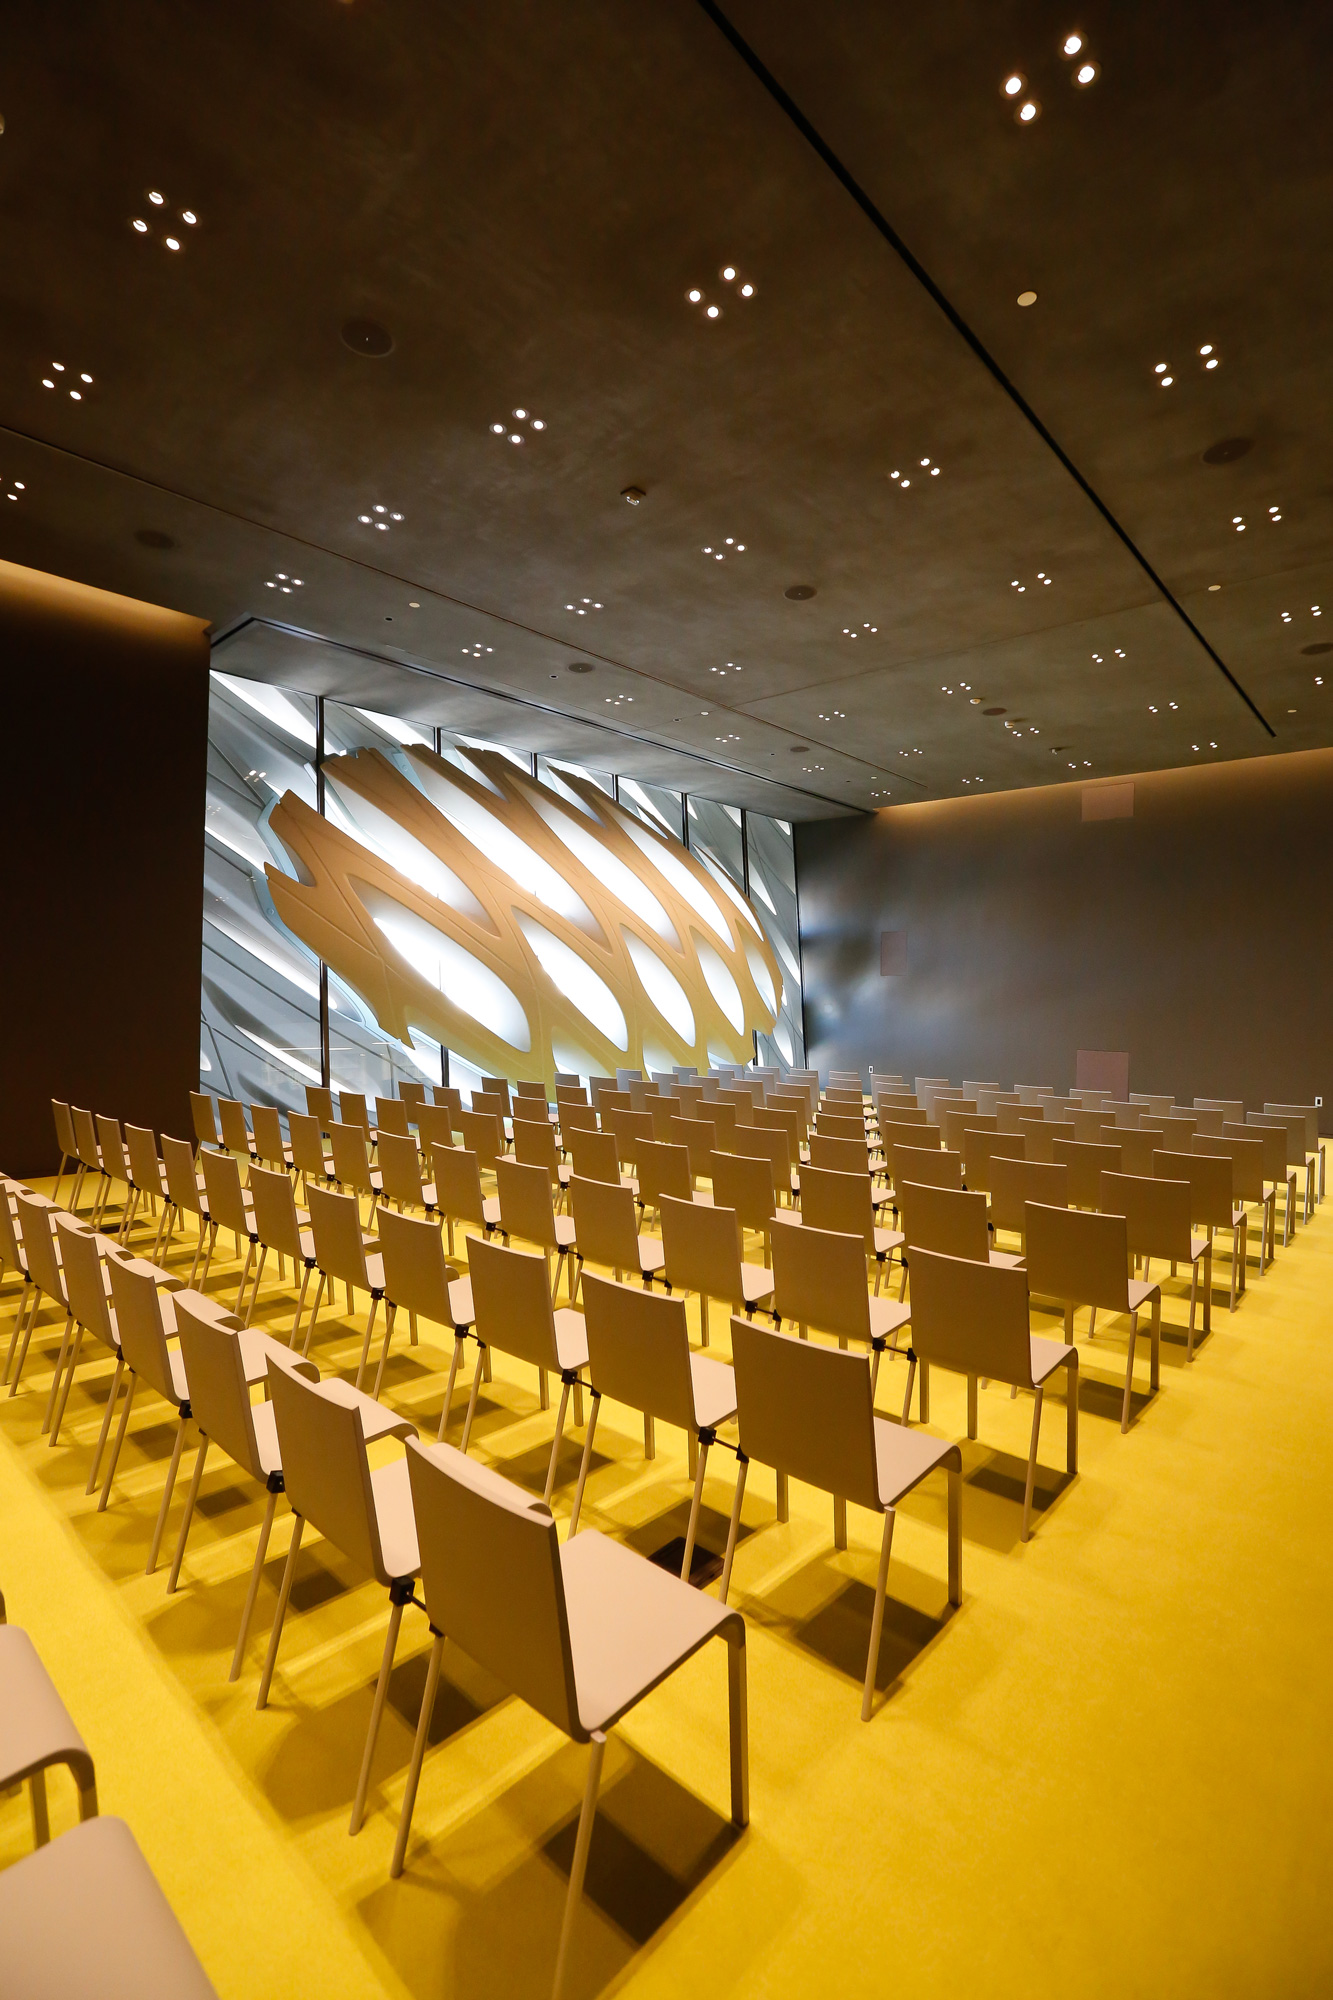 Contemporary Art Museum The Broad © Elizabeth Daniels, courtesy of The Broad and Diller Scofidio + Renfro